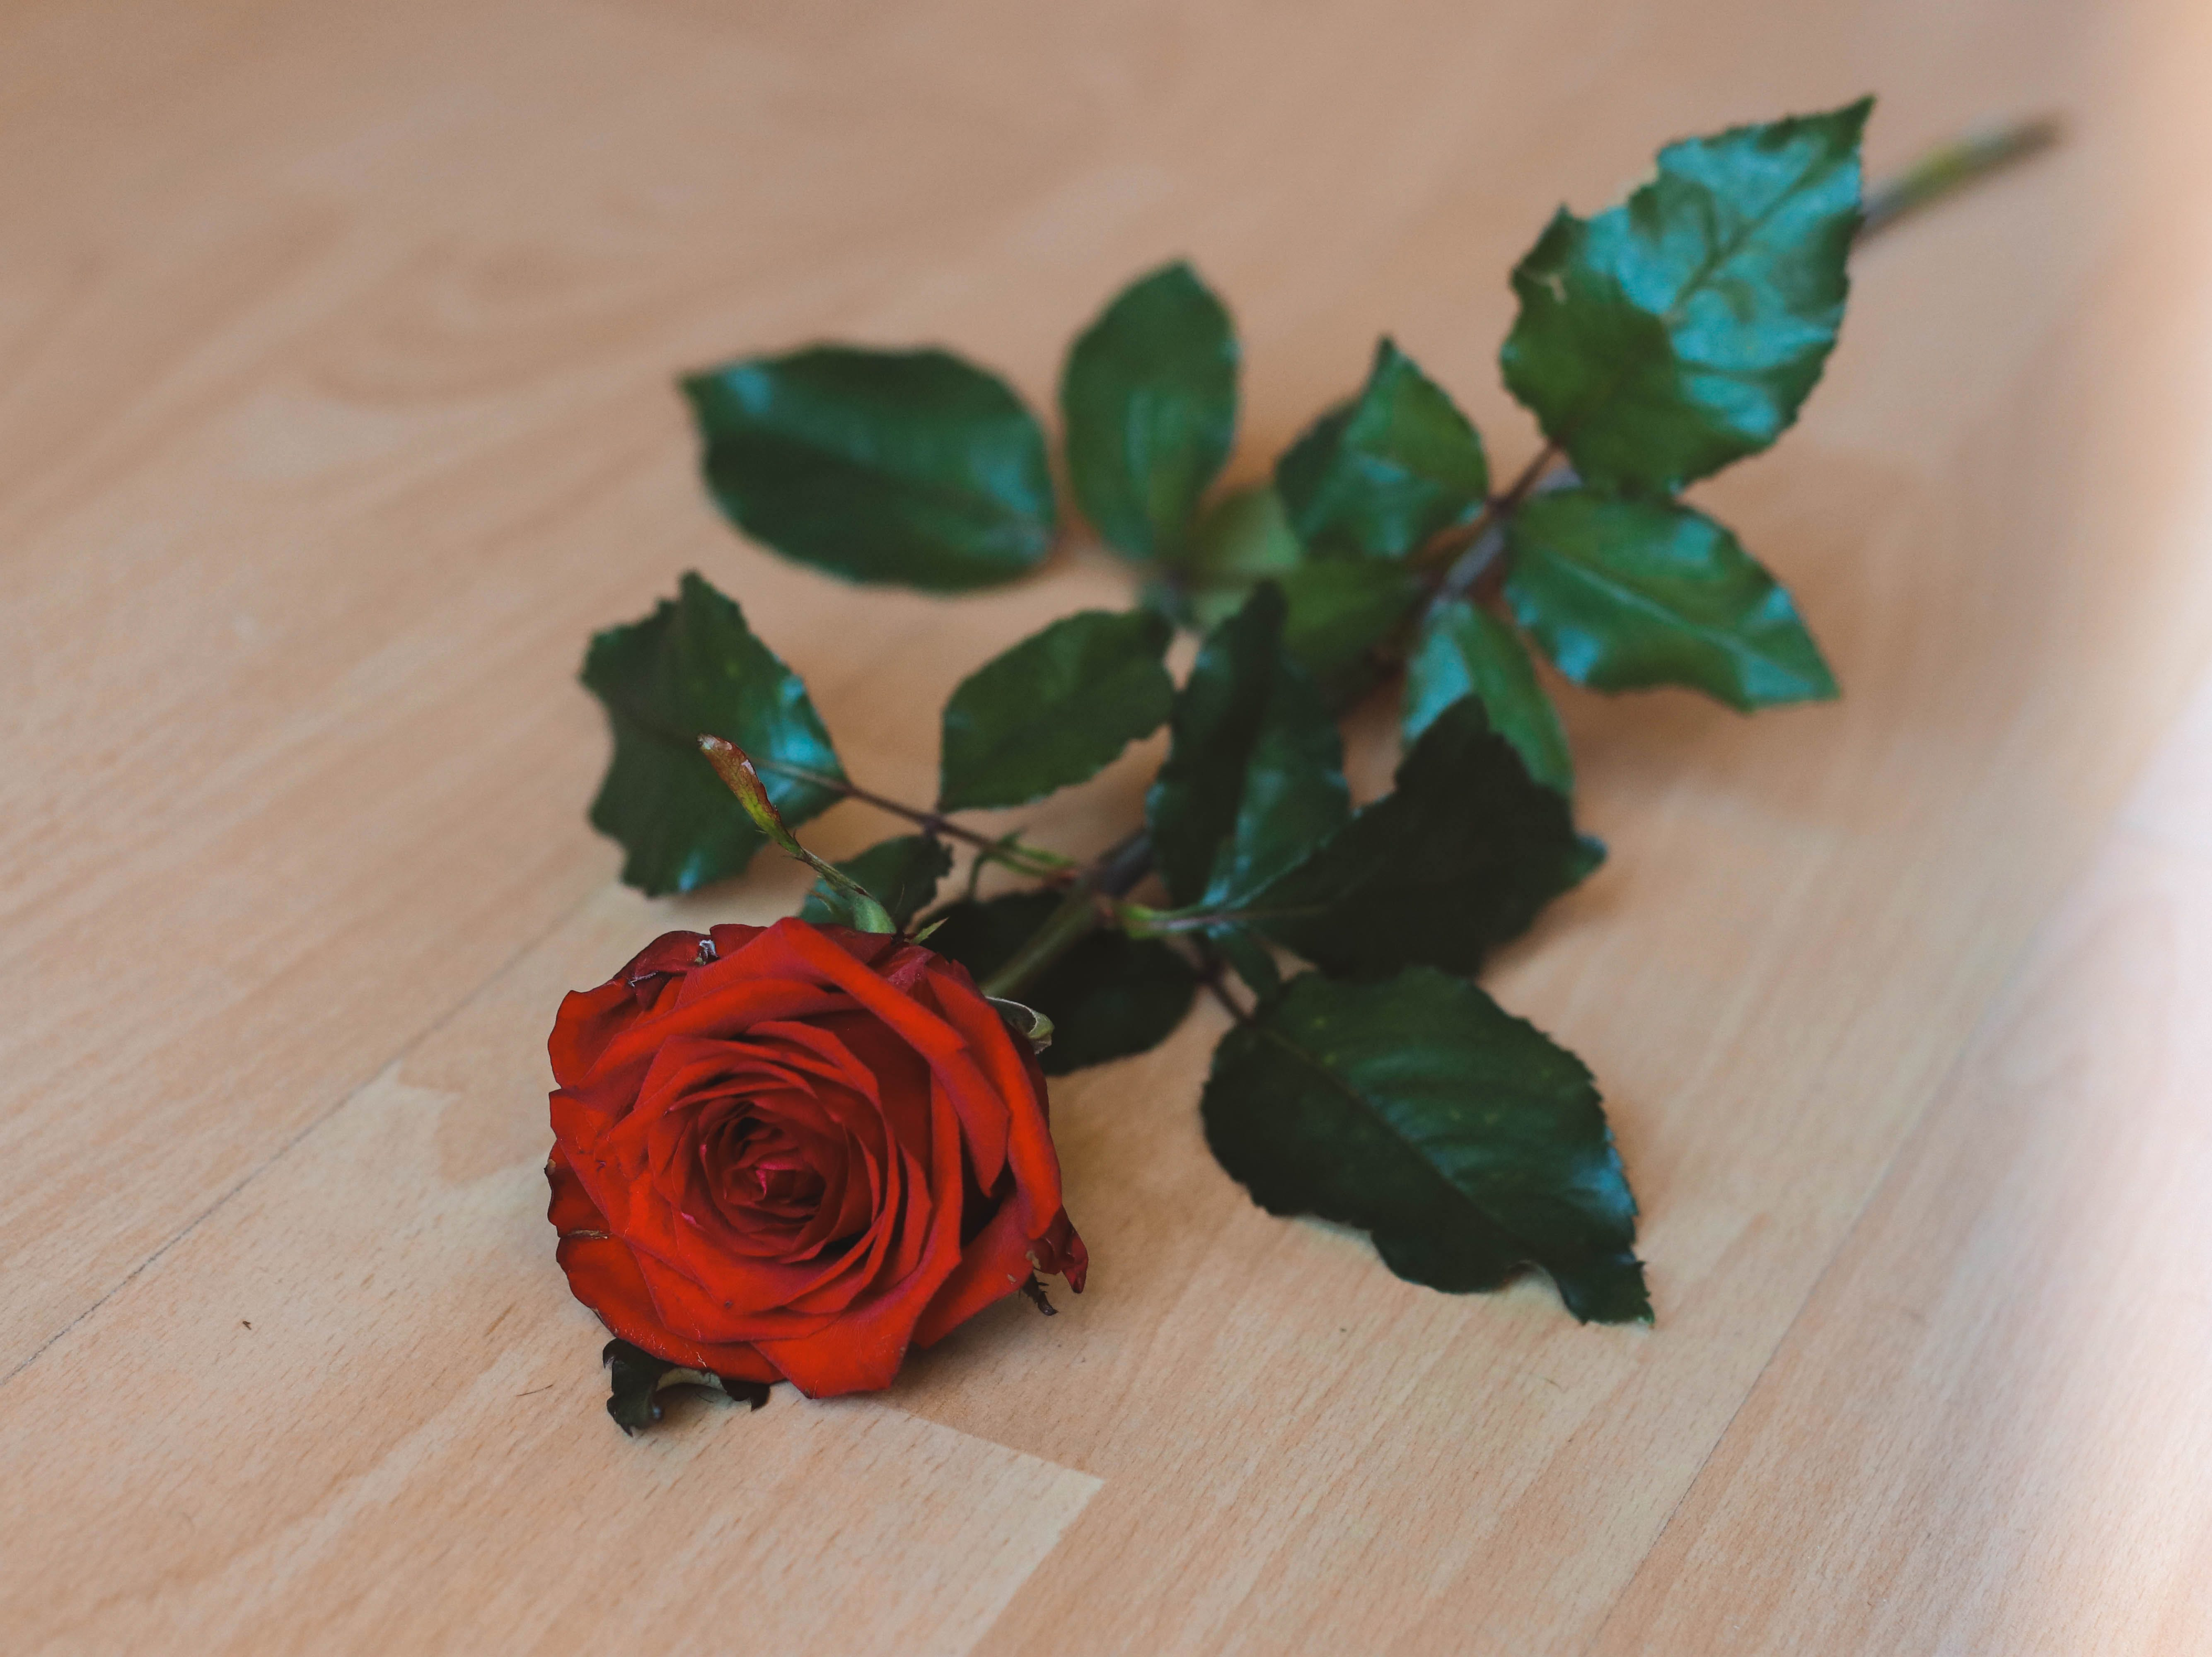 Free stock photo of flower, leaves, Red Rose, rose